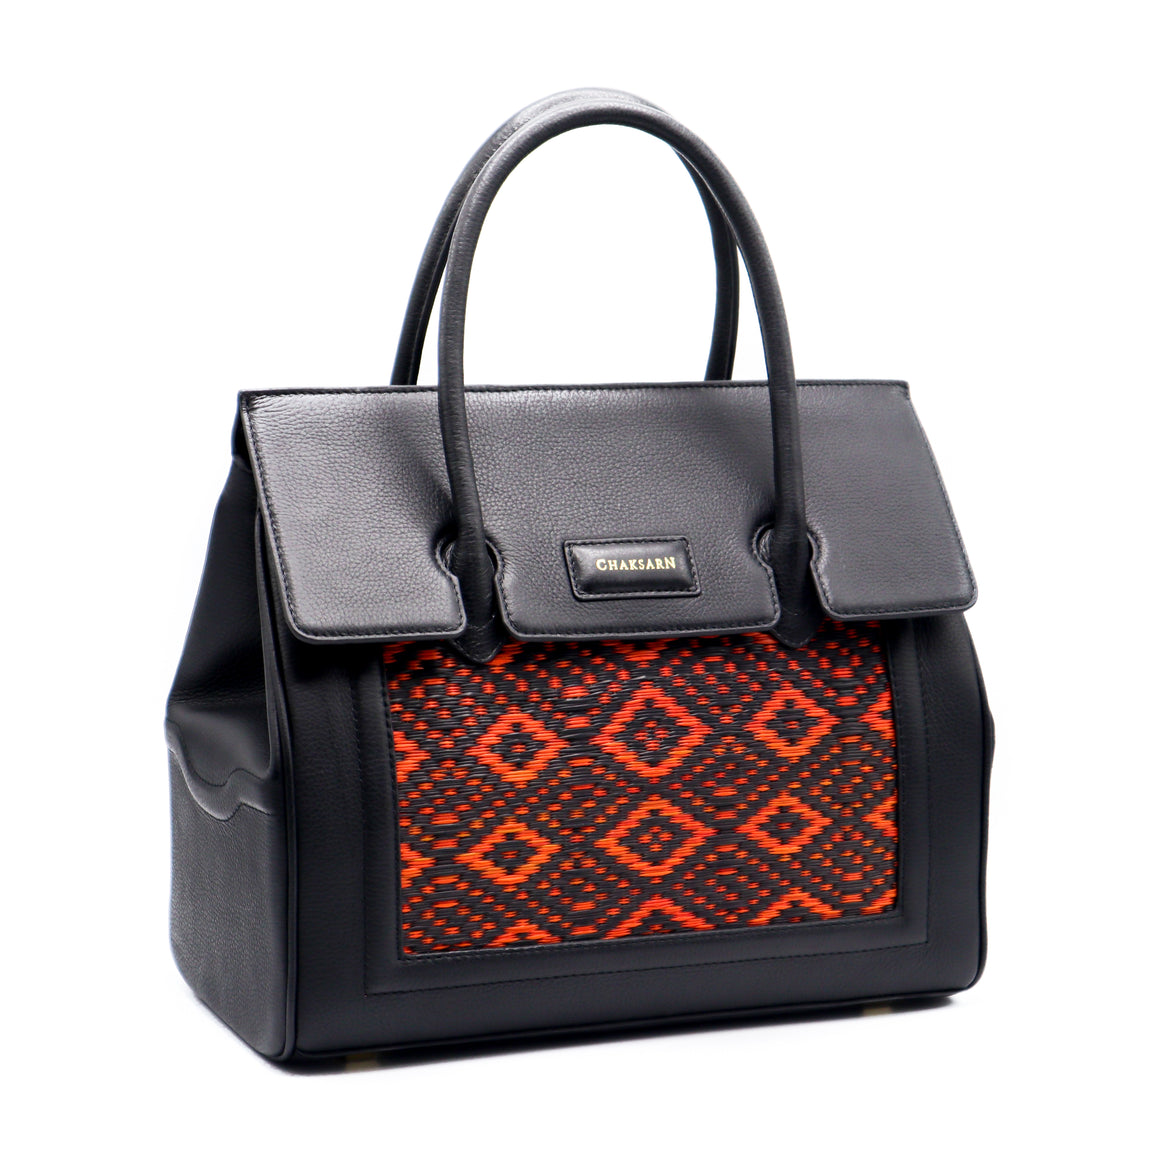 Lady - Black & Orange (Diamond)